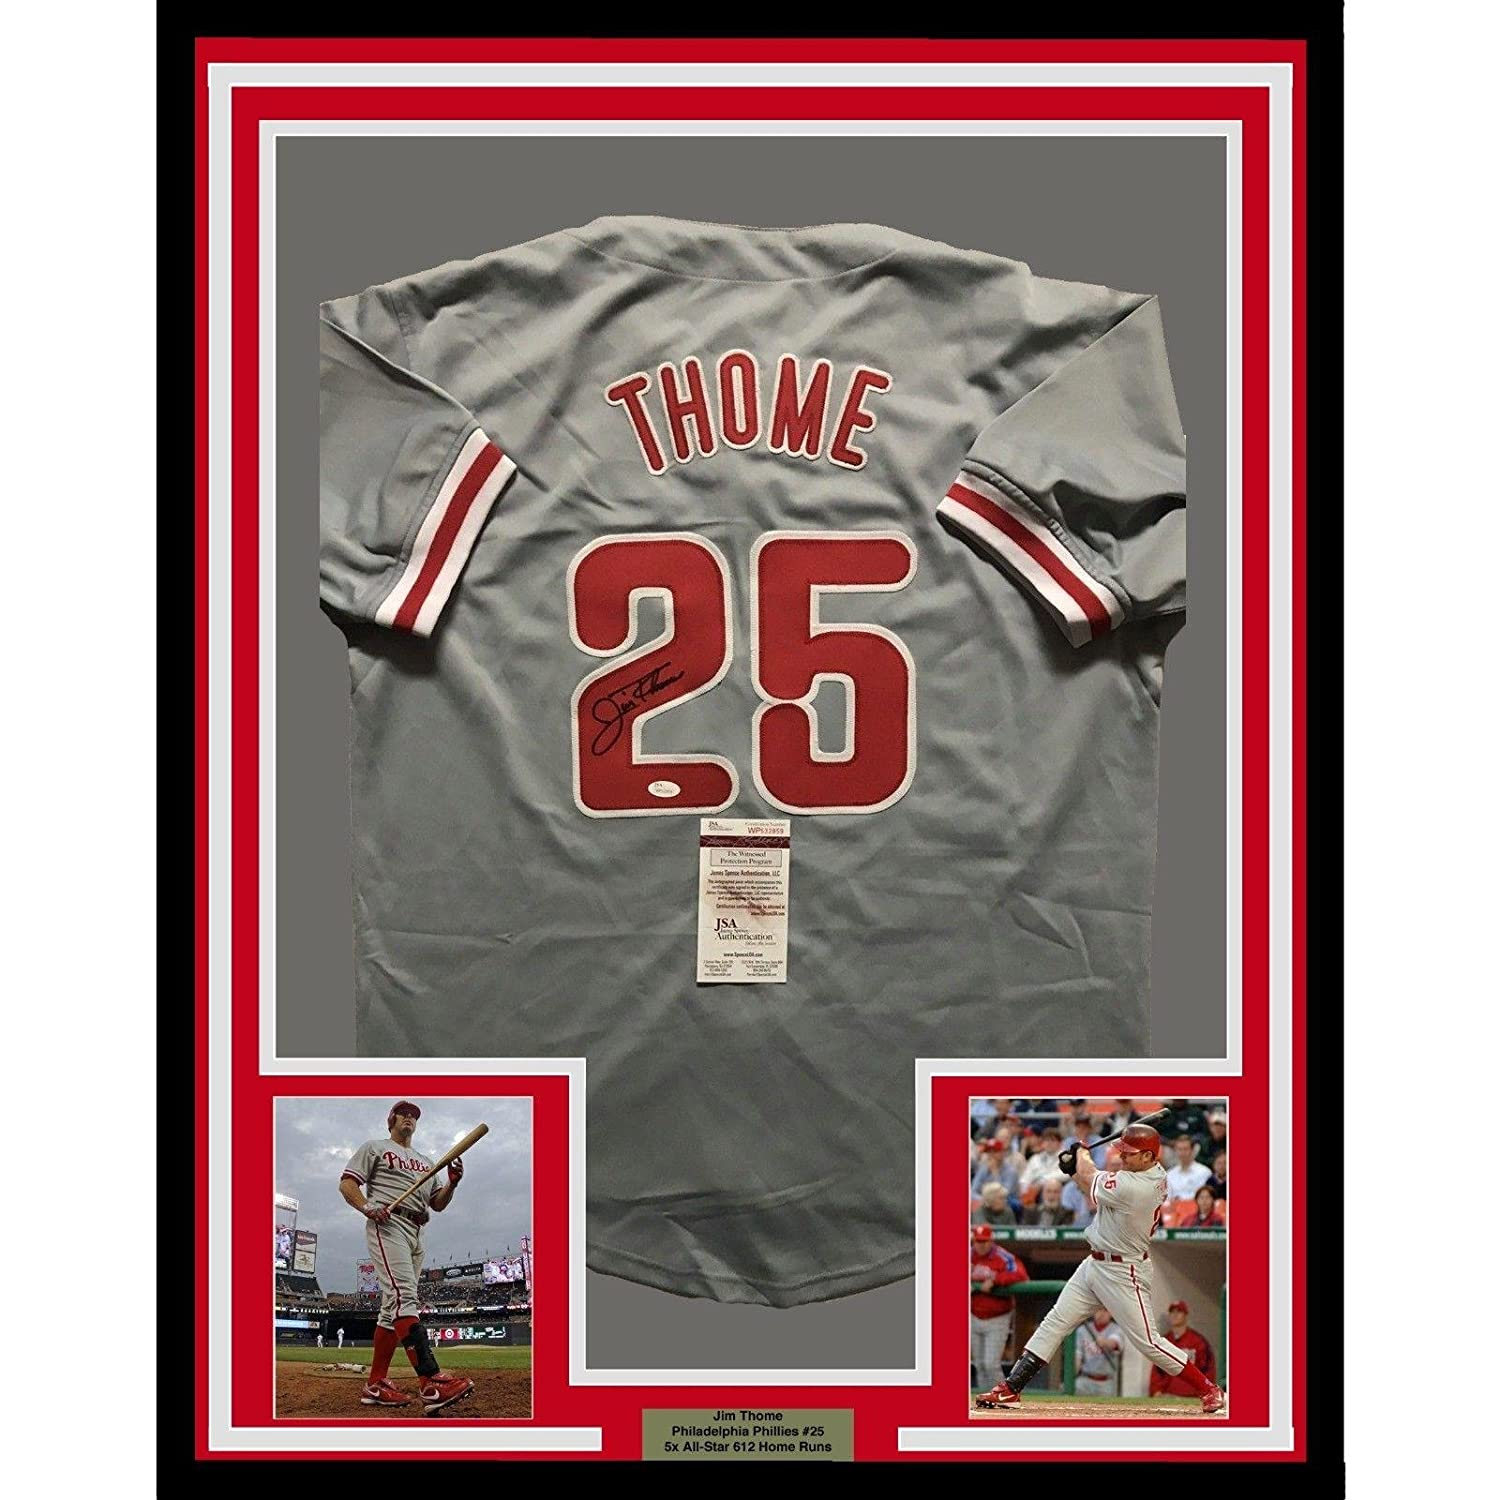 e4305c9dc Amazon.com: Autographed Jim Thome Jersey - FRAMED 33x42 COA - JSA Certified  - Autographed MLB Jerseys: Sports Collectibles